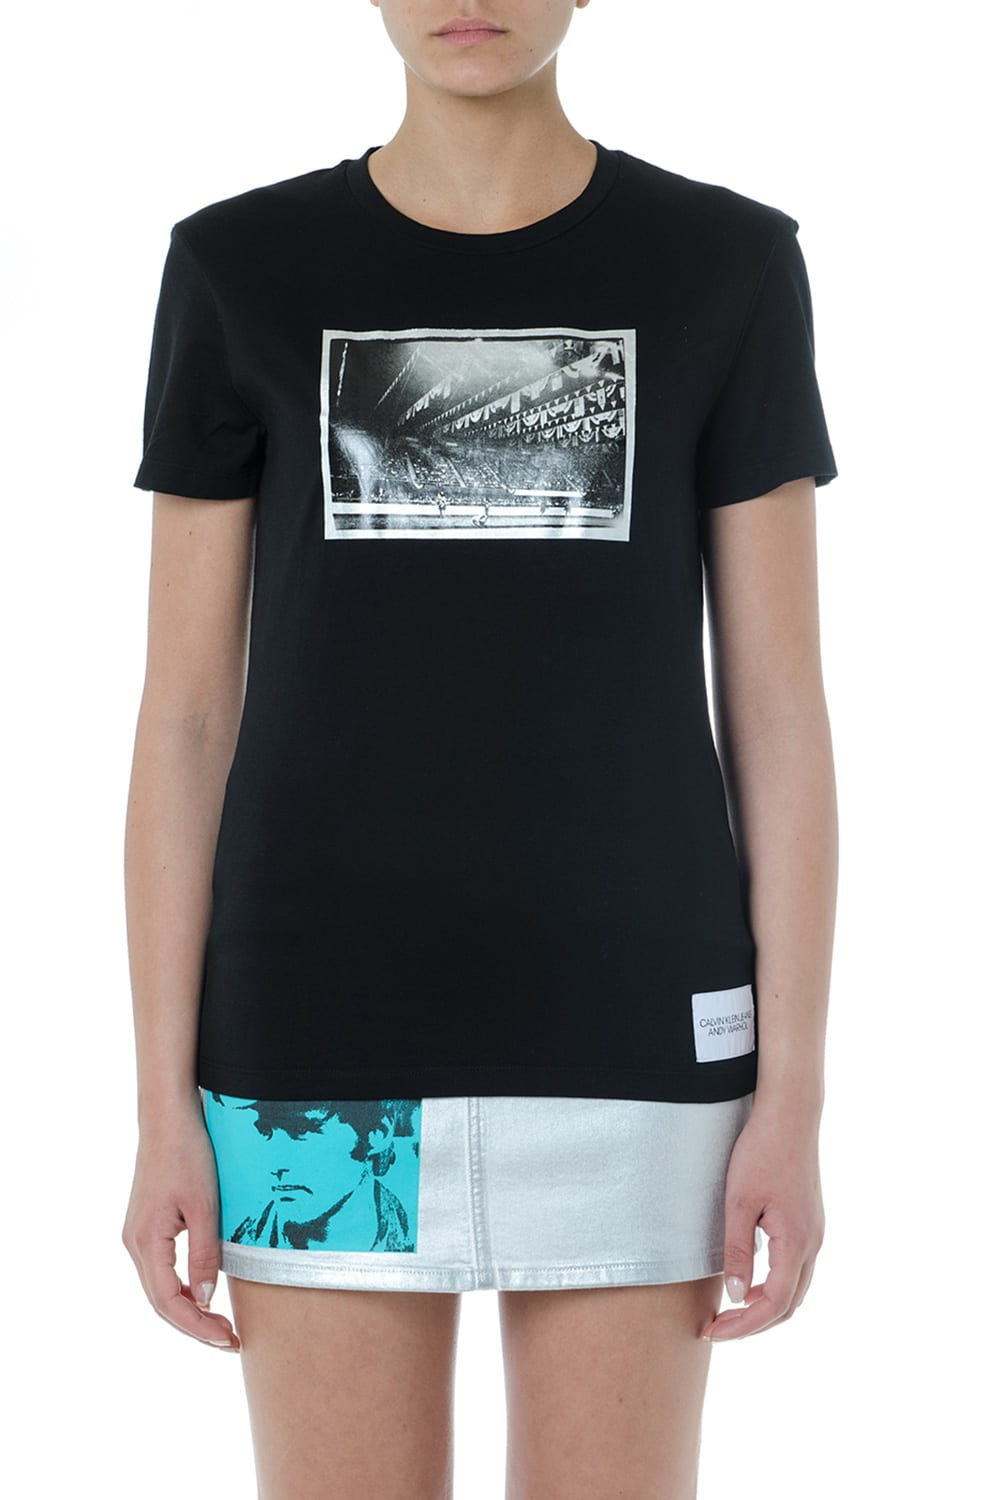 Calvin Klein Jeans Black Cotton Printed T Shirt